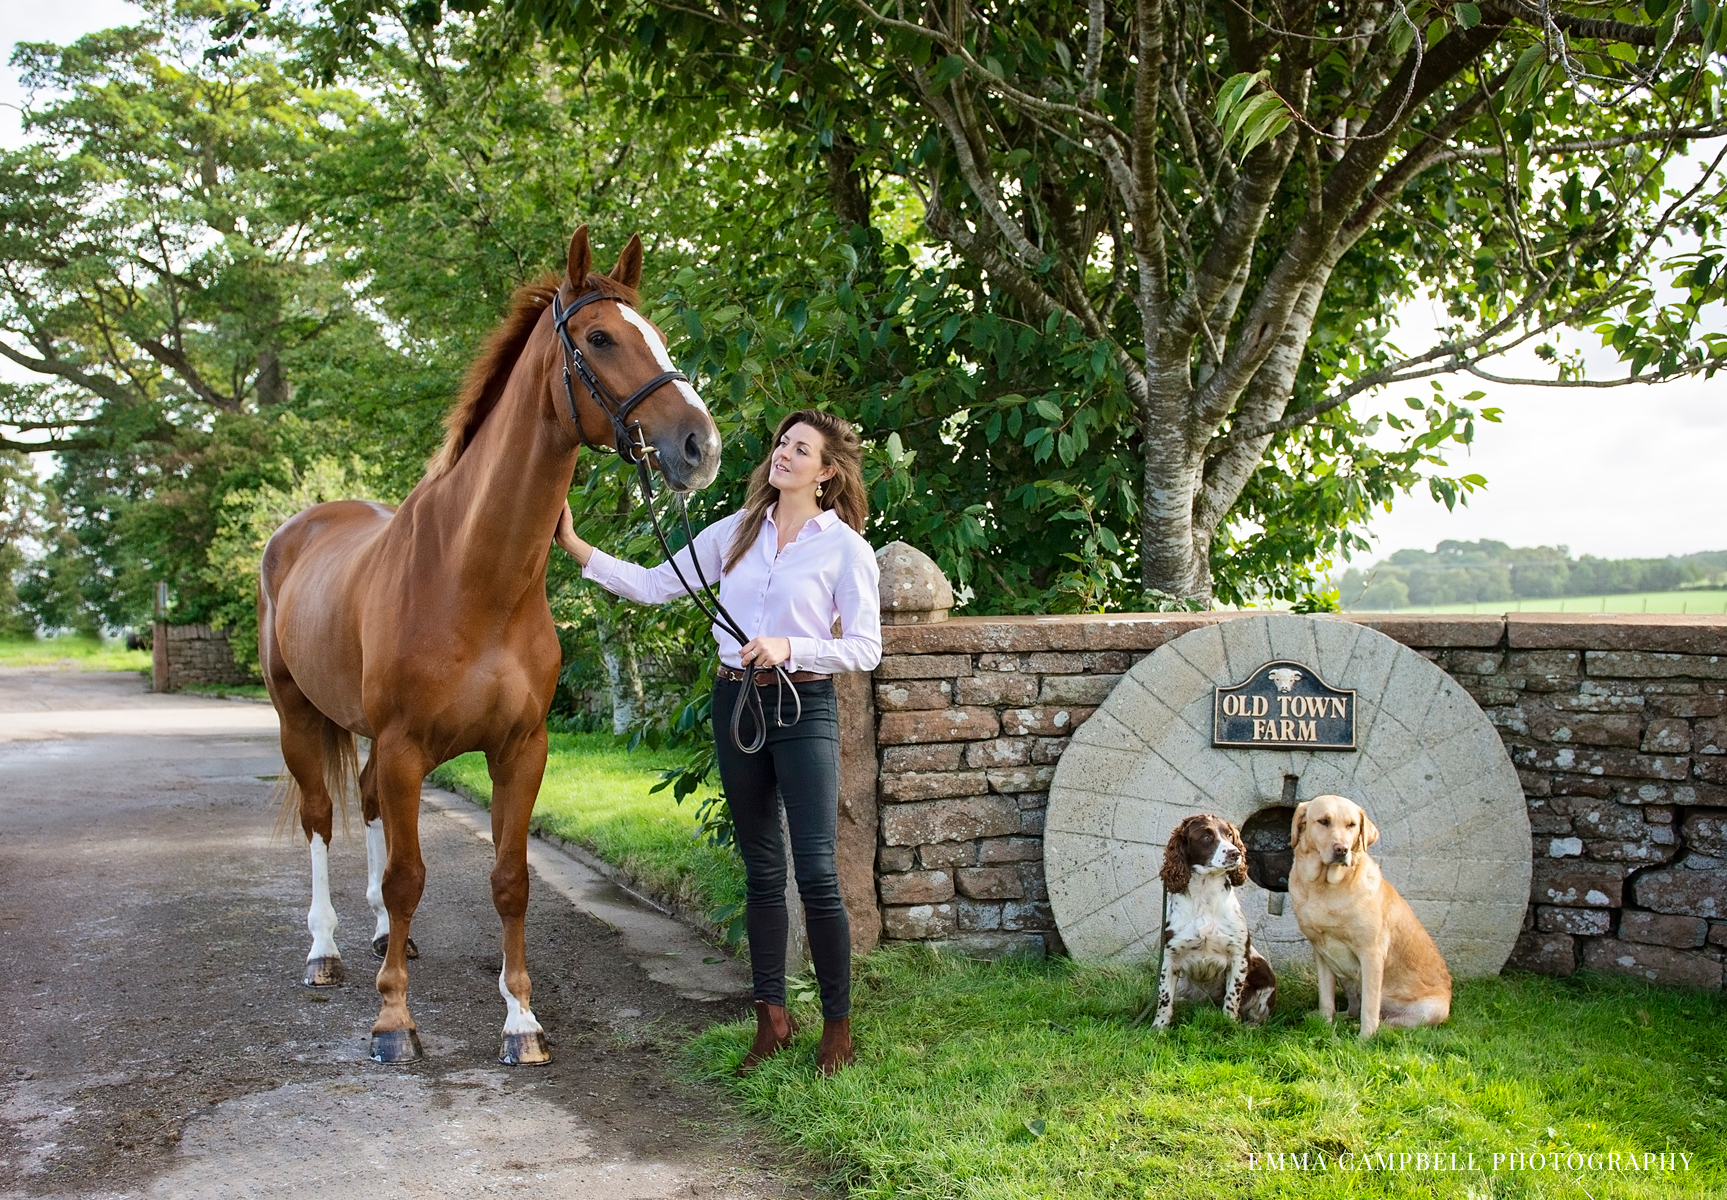 Cumbrian, equestrian photoshoot